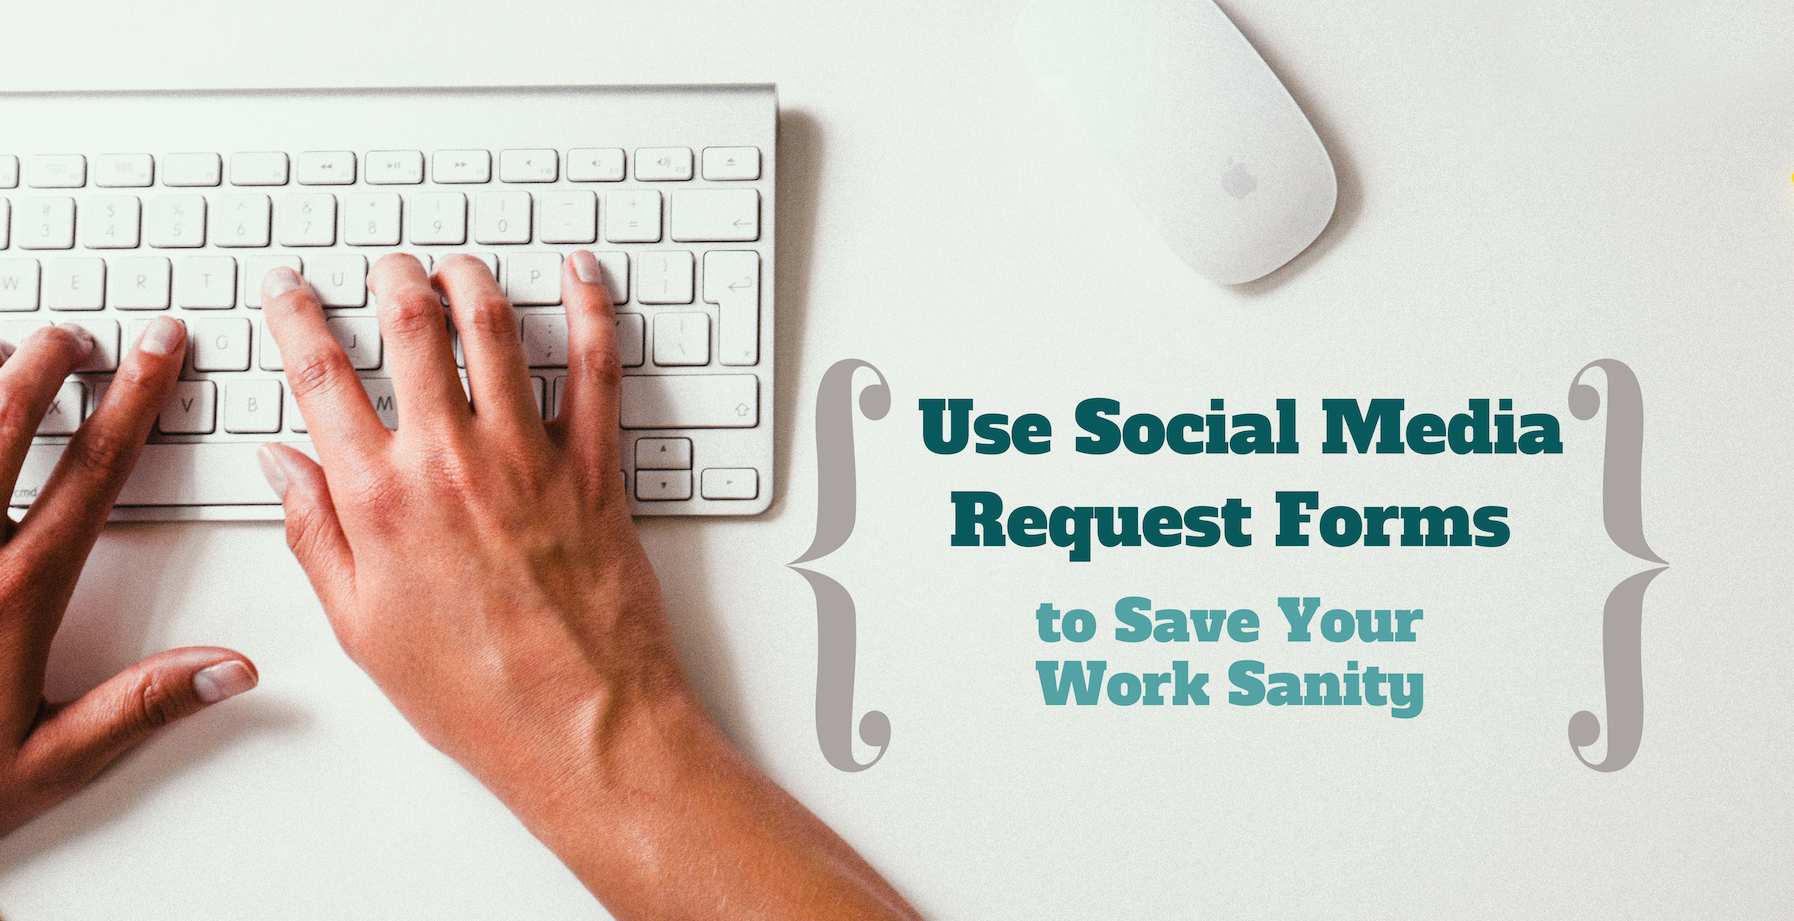 Use Social Media Request Forms to Save Your Work Sanity | Susan's Site